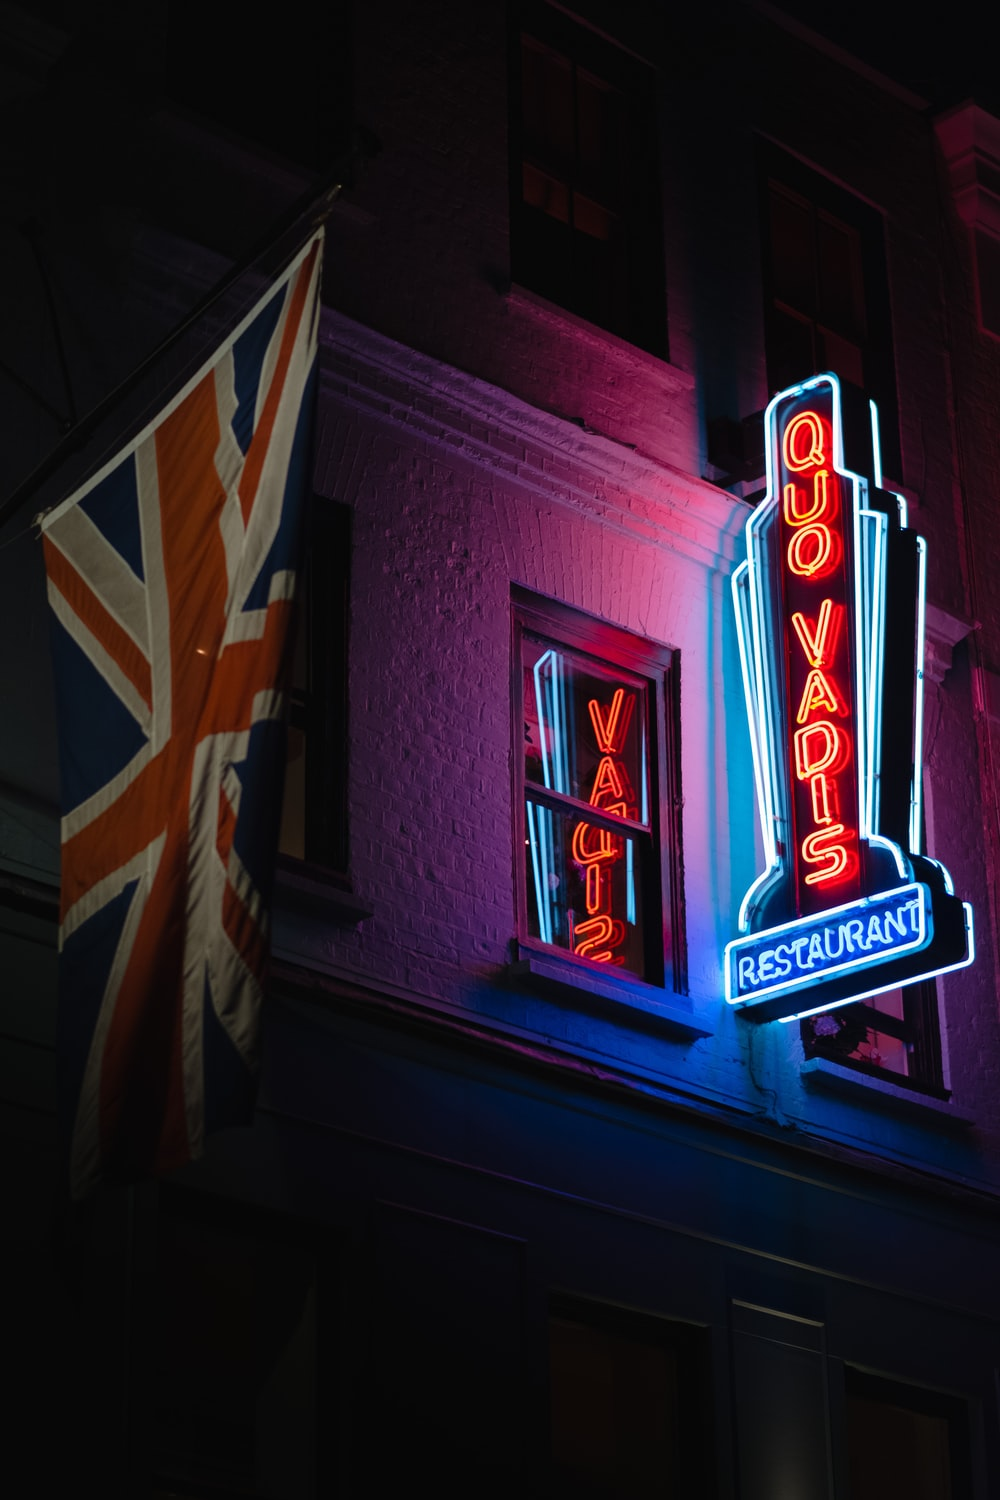 Soho, london, united kingdom and neon | HD photo by Craig Whitehead